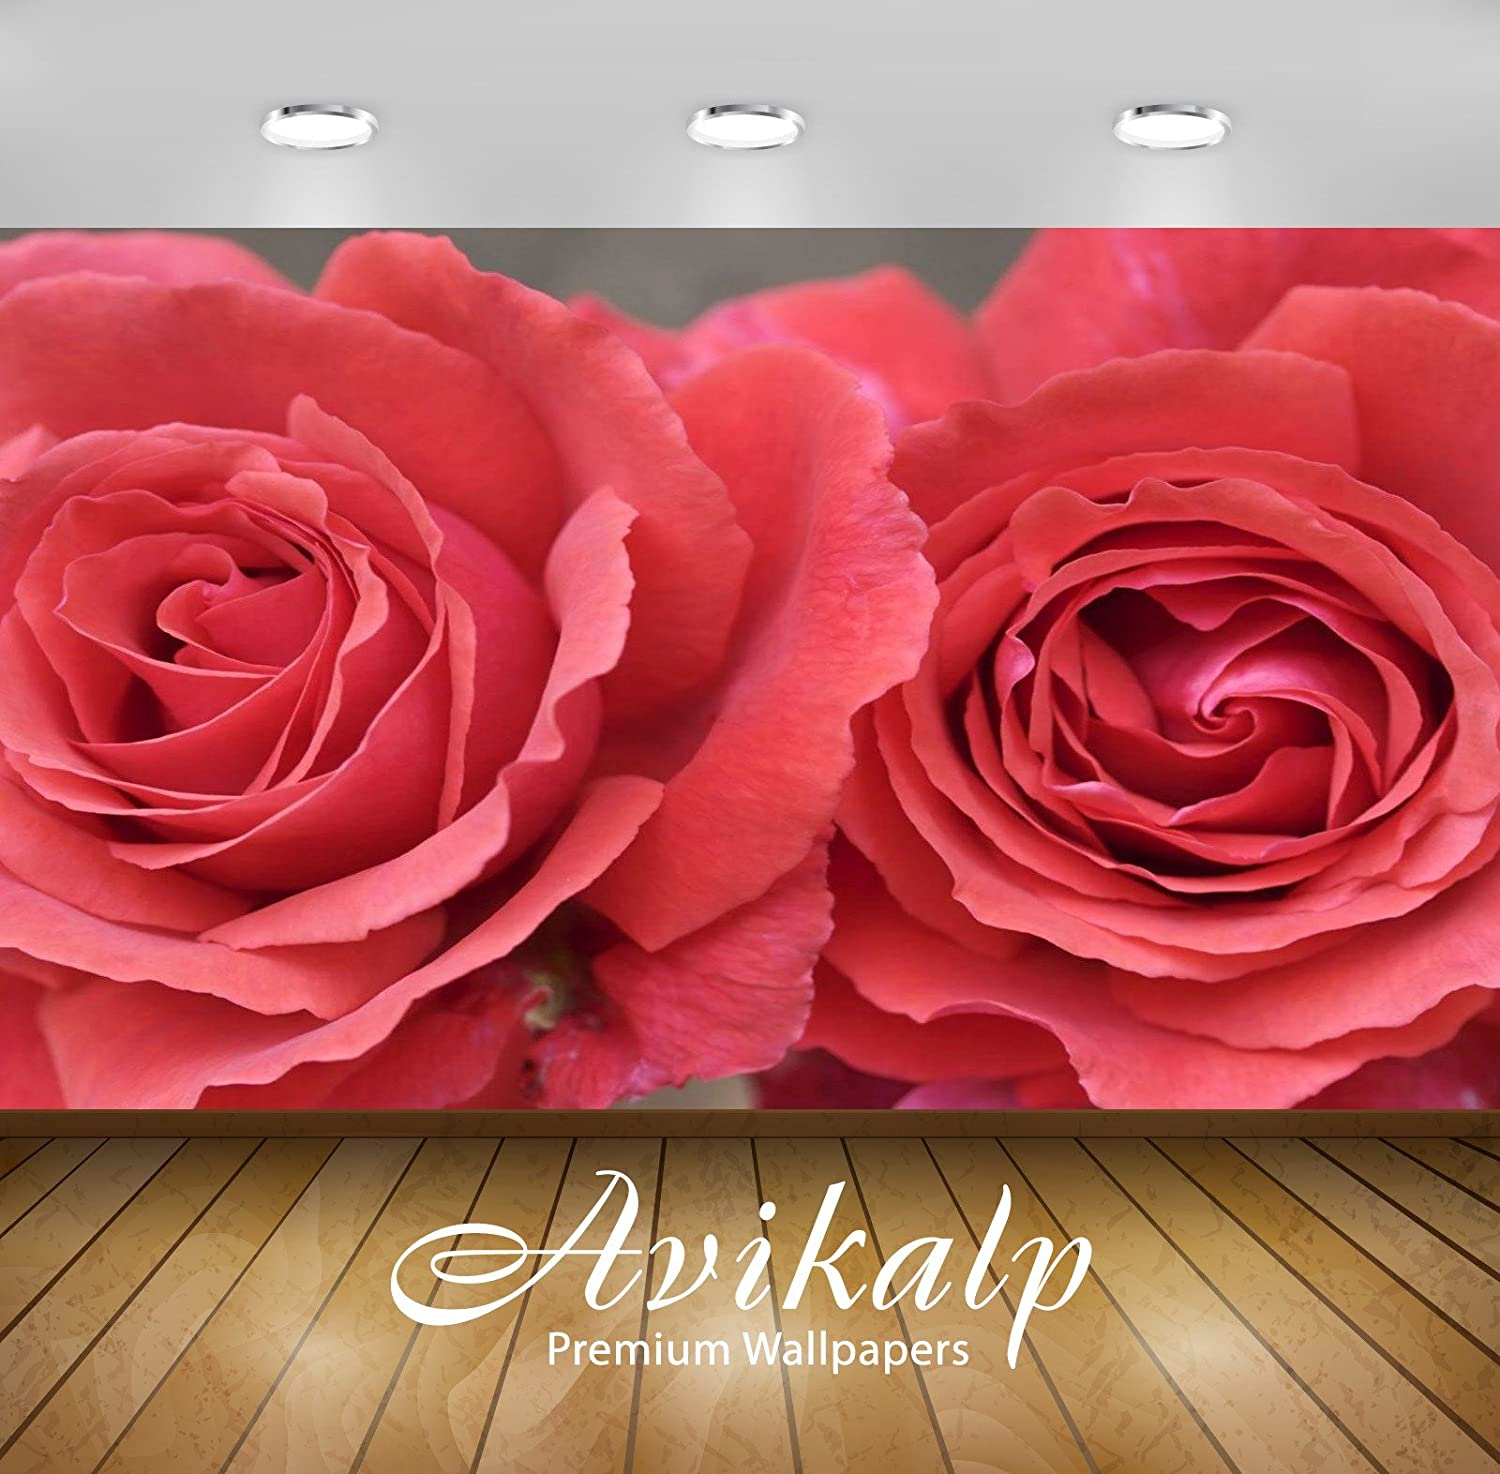 Buy Avikalp Awi3296 Beautiful Red Rose Flowers Full HD 3D Scenery Wallpaper  Or Wall Sticker (Vinyl, 3 X 2 Ft) Online at Low Prices in India - Amazon.in